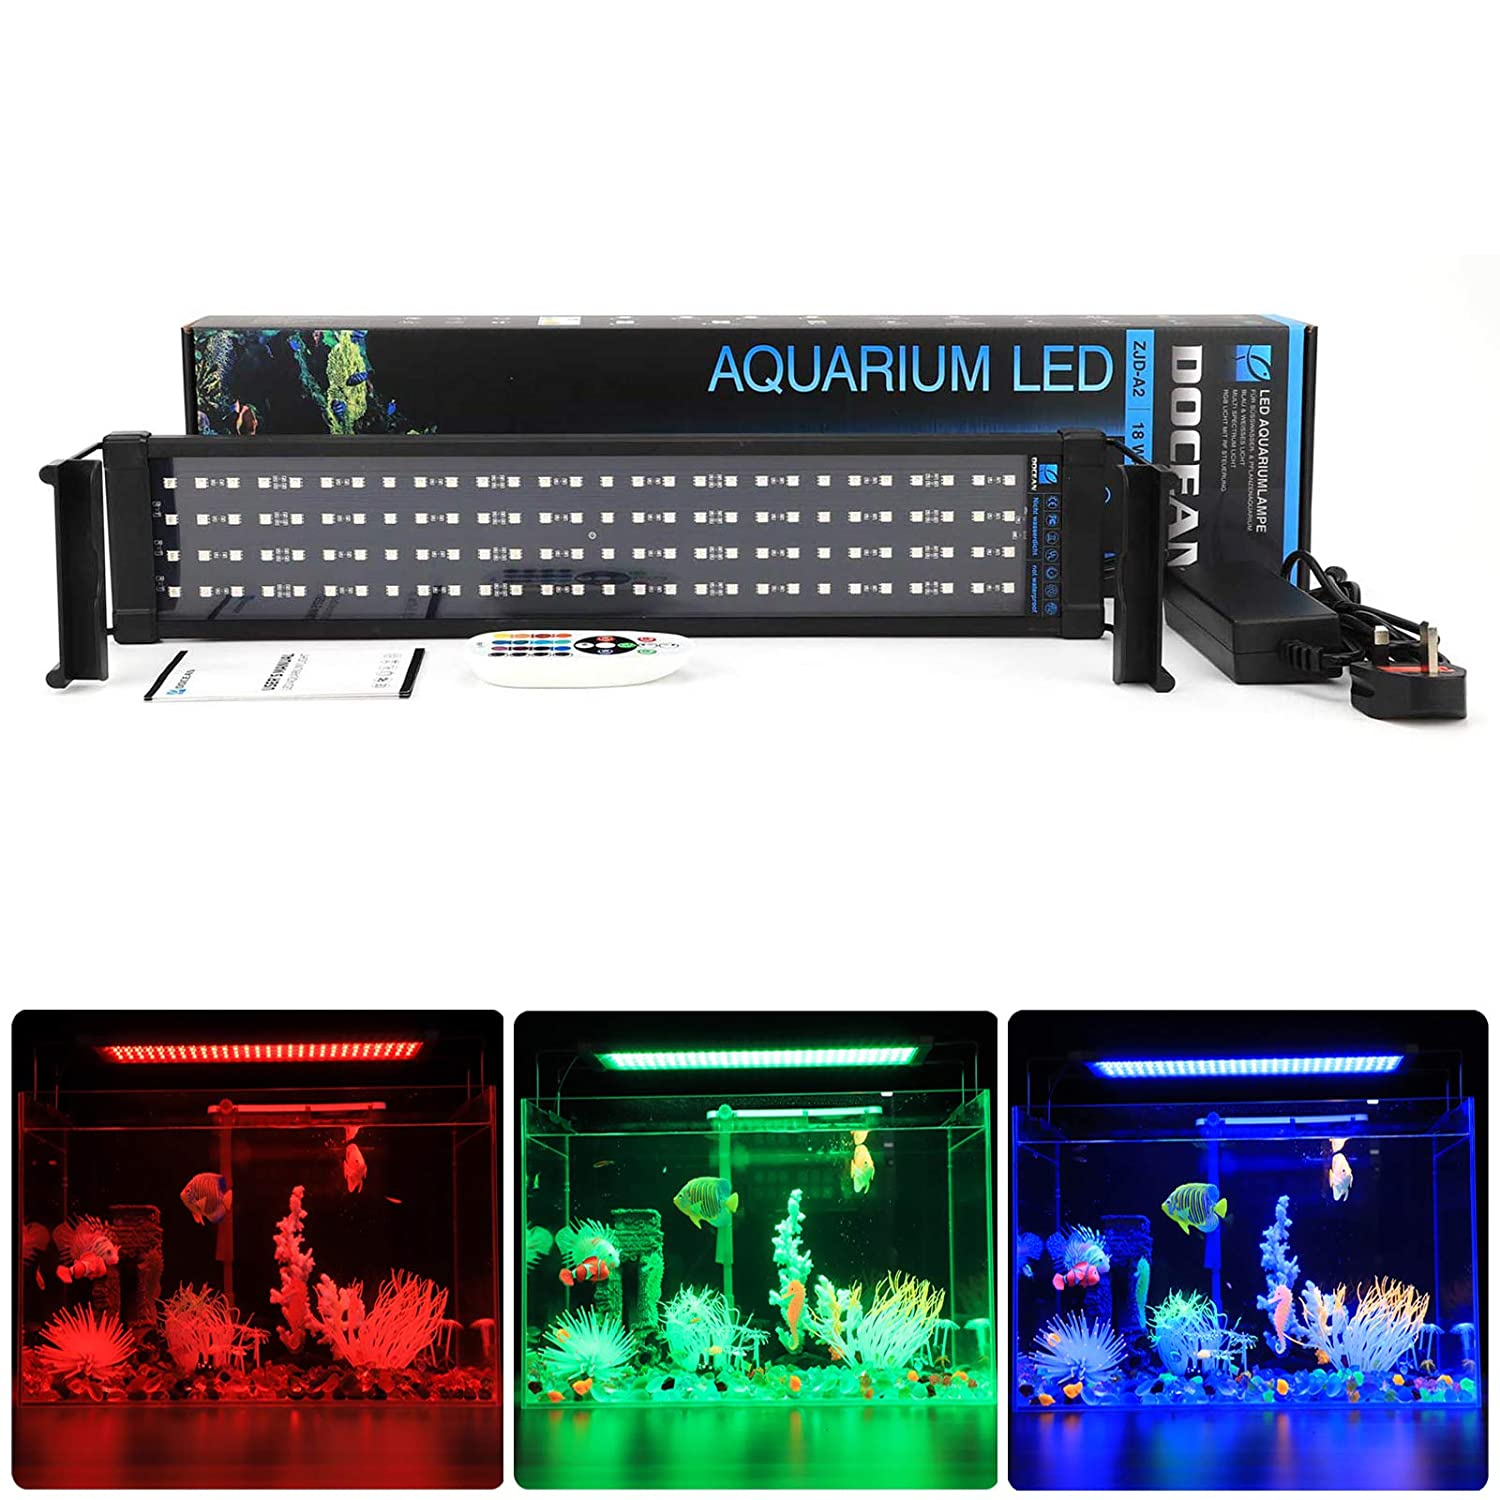 50cm72cm RGBDOCEAN LED Aquarium Light, Fish Tank Light with bluee and White LEDs, 26W 126pcs 5050SMD, 2080lm, Fits Aquarium 7294cm in Length, 2 Lighting Modes (bluee+White, bluee)